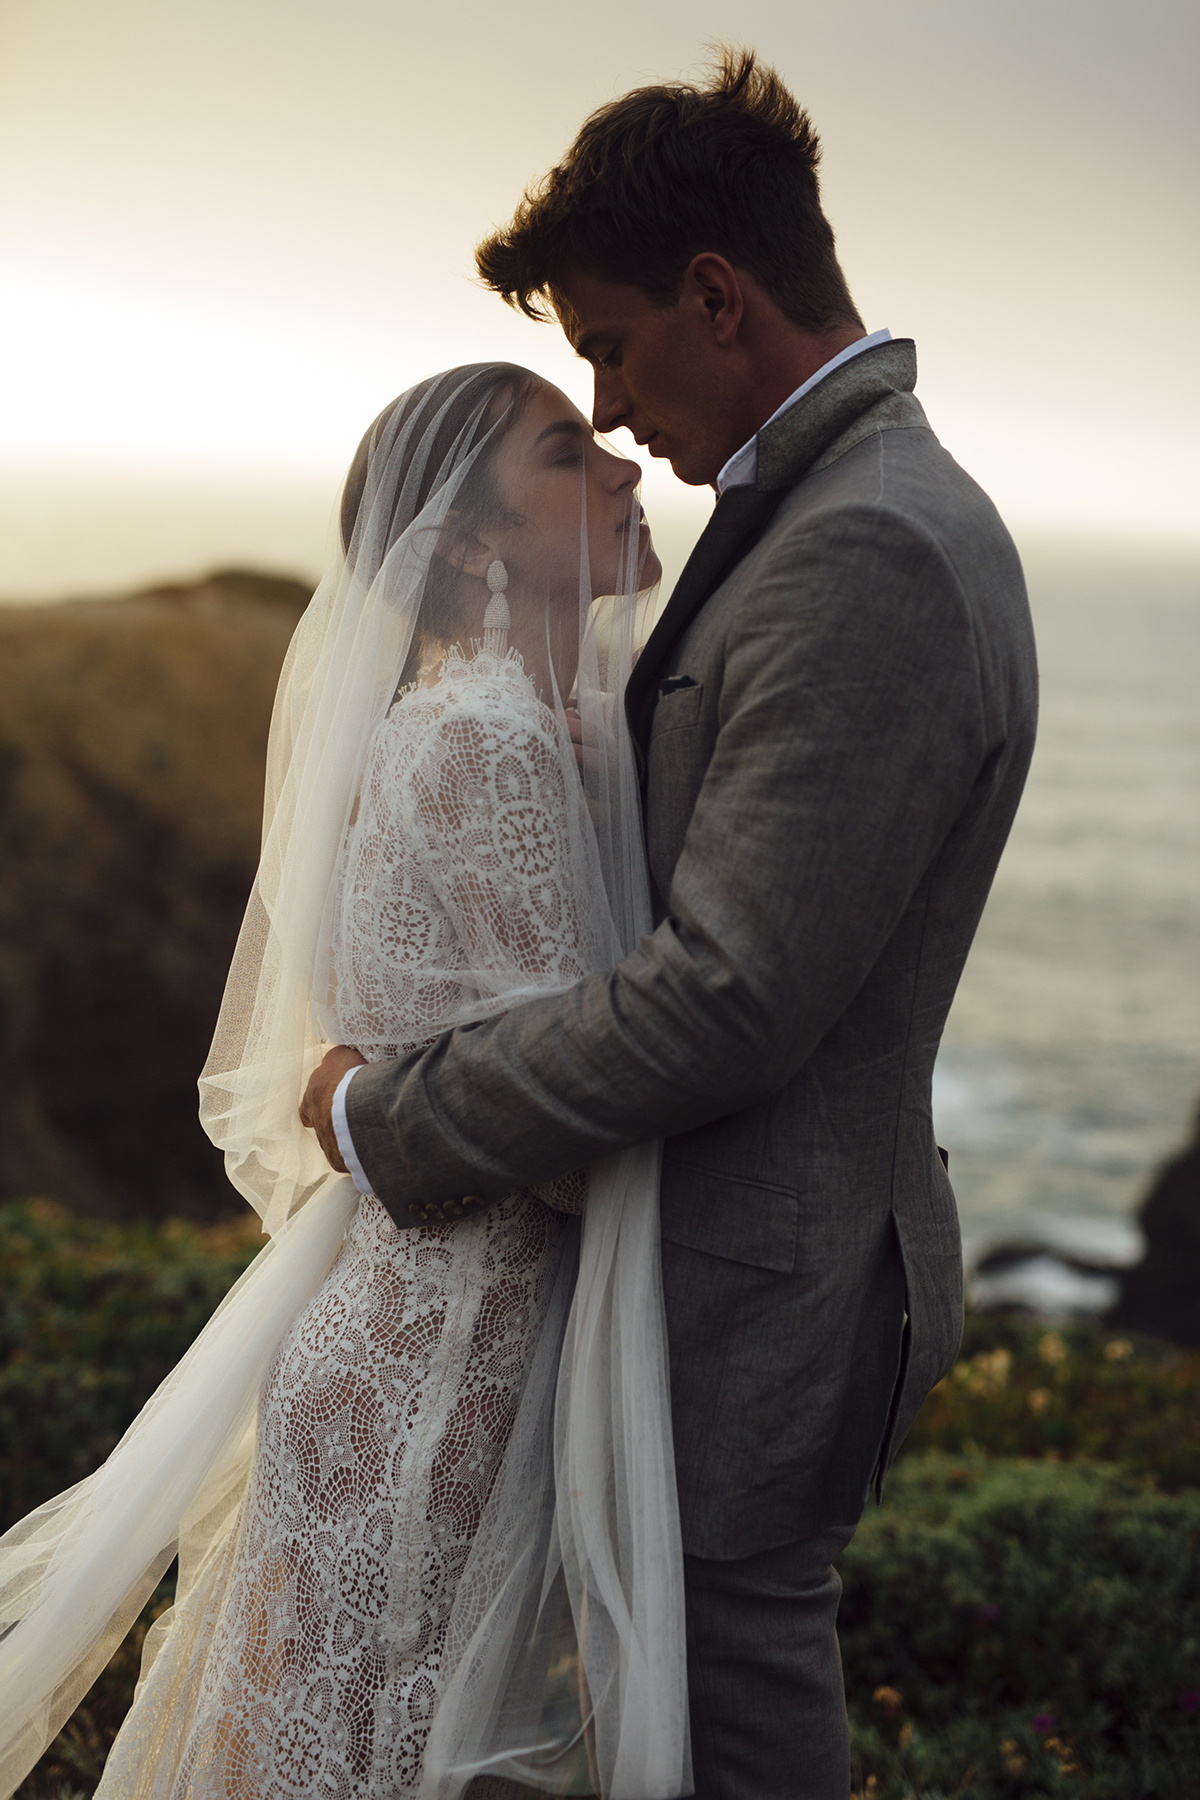 California-Wedding-Elopment-Bride-Artur-Zaitsev-Photographer-Photography-Seaside-Westcoast-13